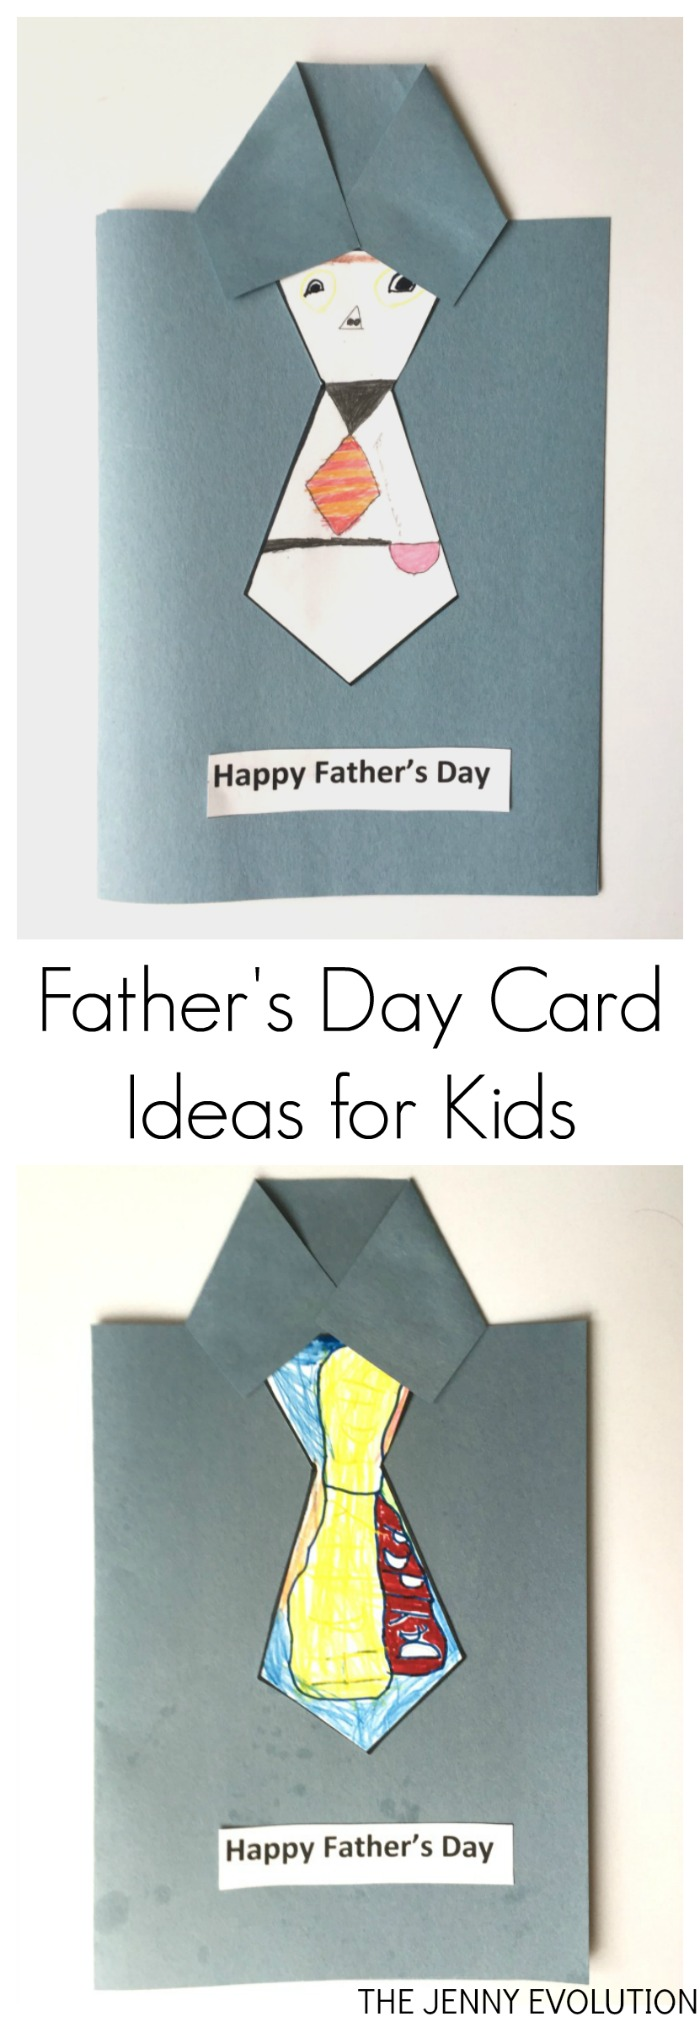 Father's Day Card Ideas for Kids